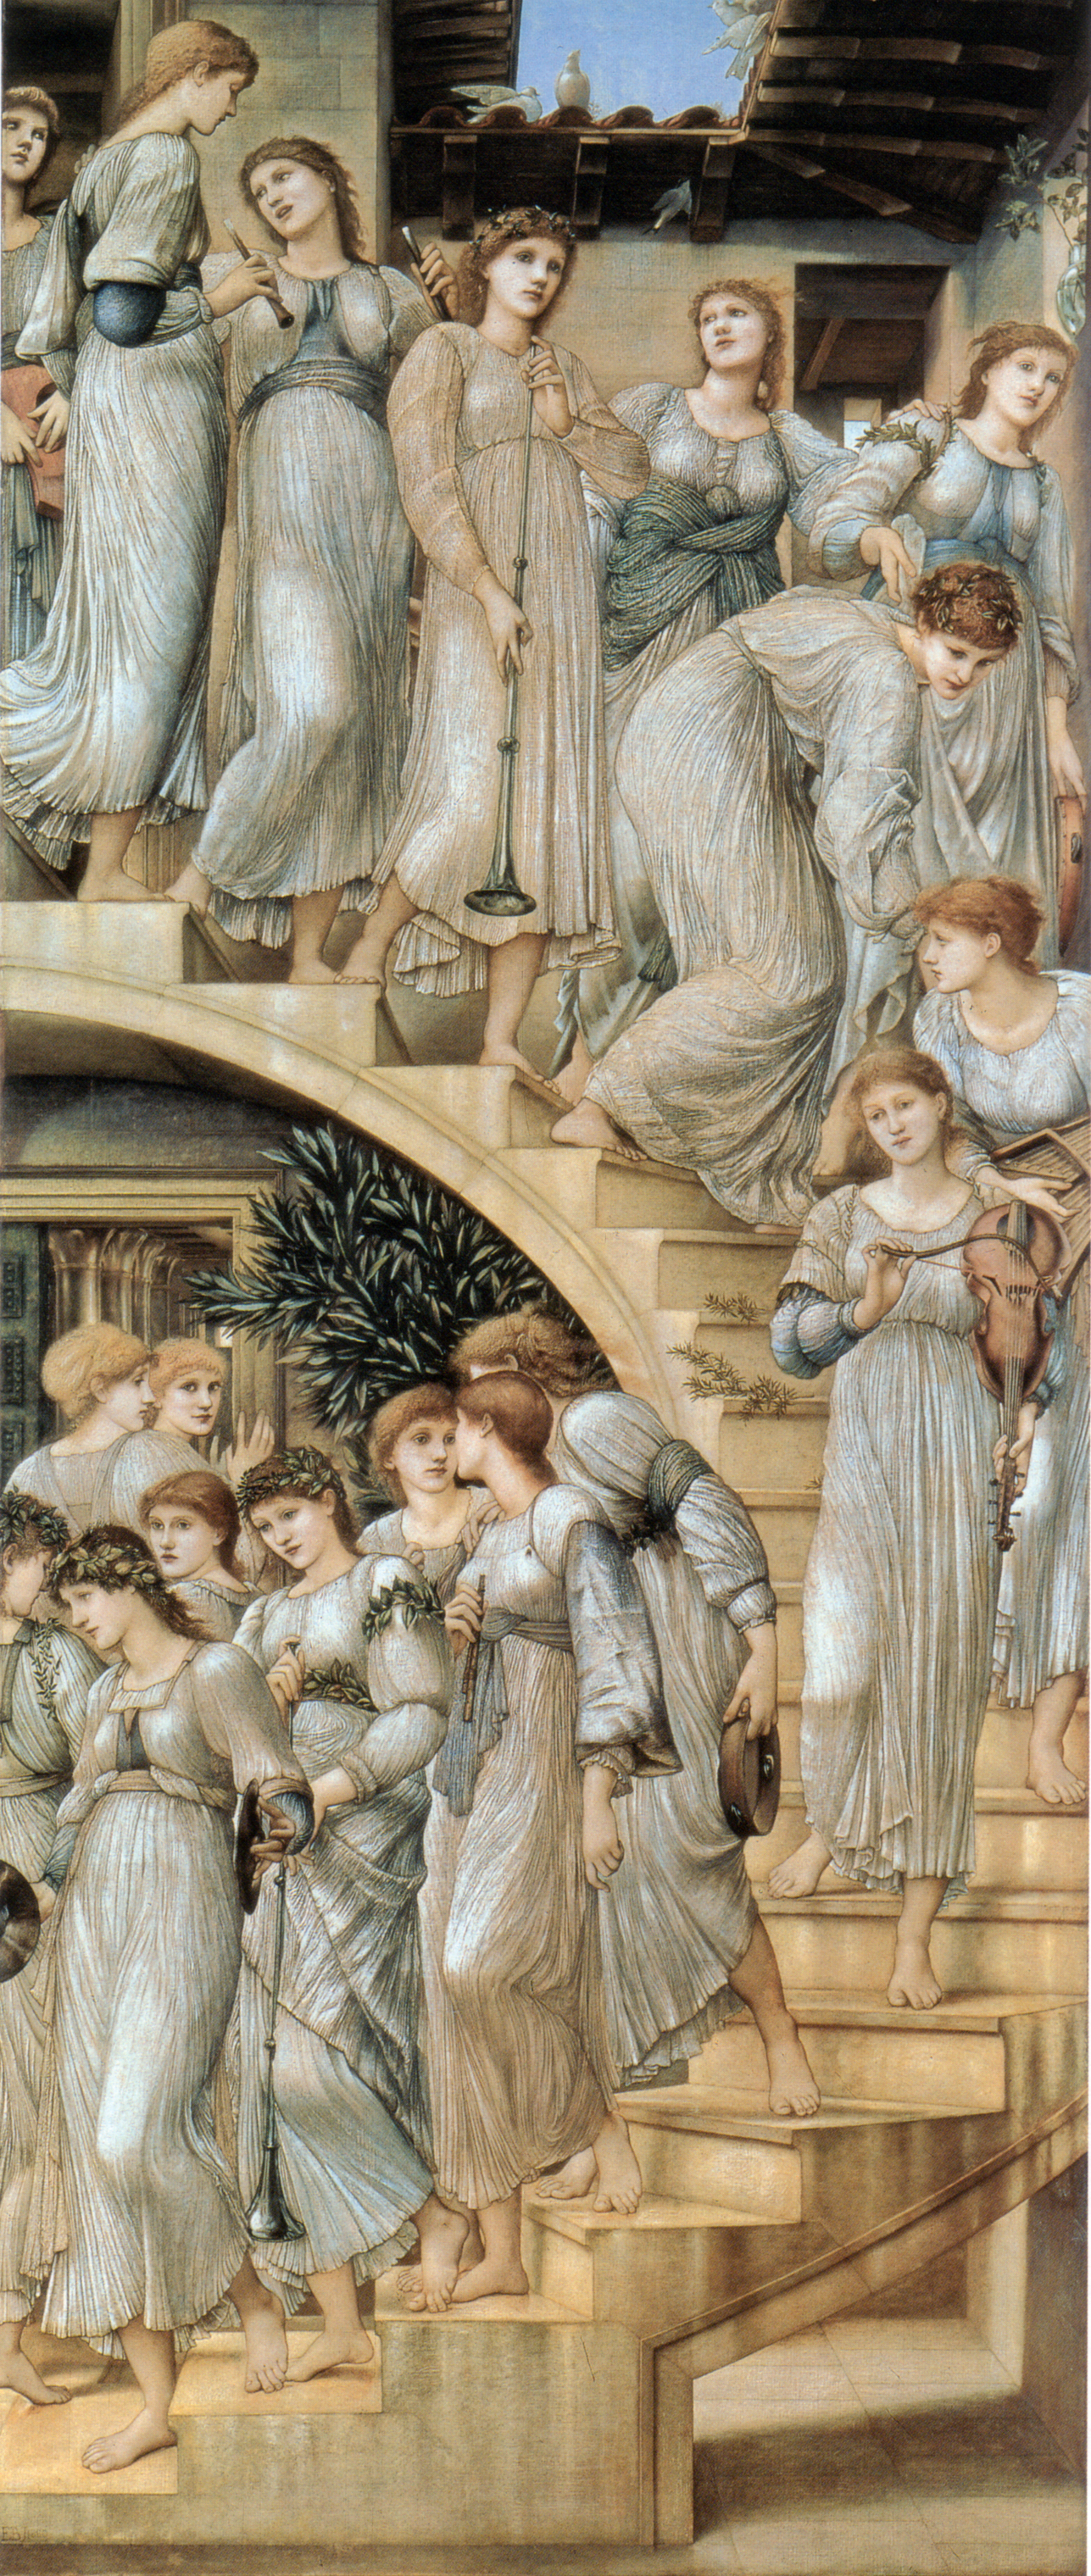 <img200*0:http://upload.wikimedia.org/wikipedia/commons/7/7a/Edward_Burne-Jones_The_Golden_Stairs.jpg>